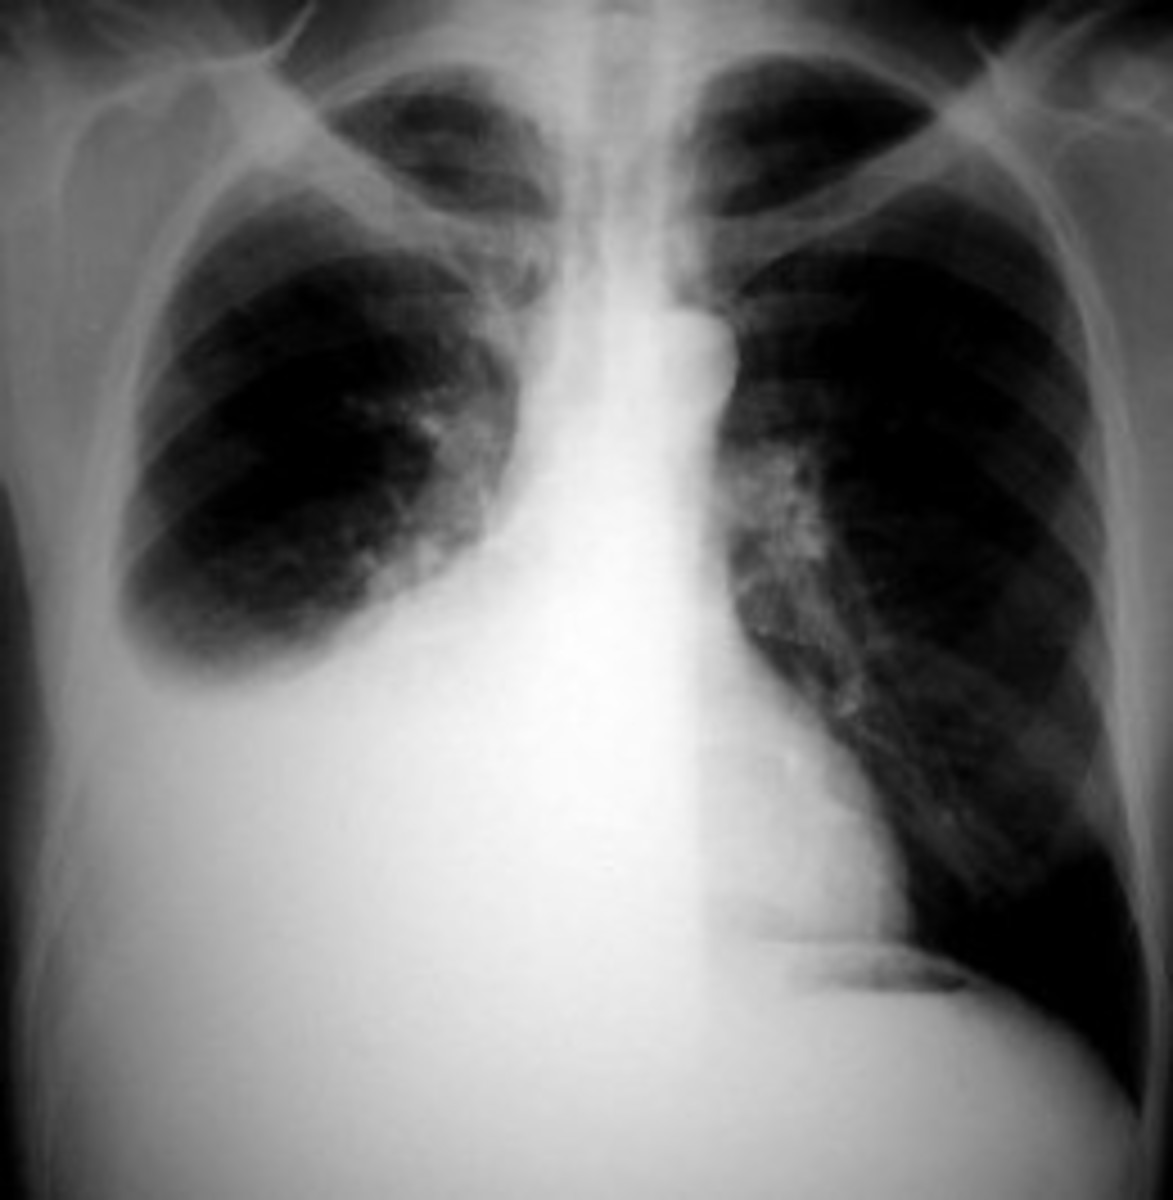 The defining symptom of pleurisy is a sudden sharp, stabbing, burning or dull pain in the right or left side of the chest during breathing, especially when one inhales and exhales